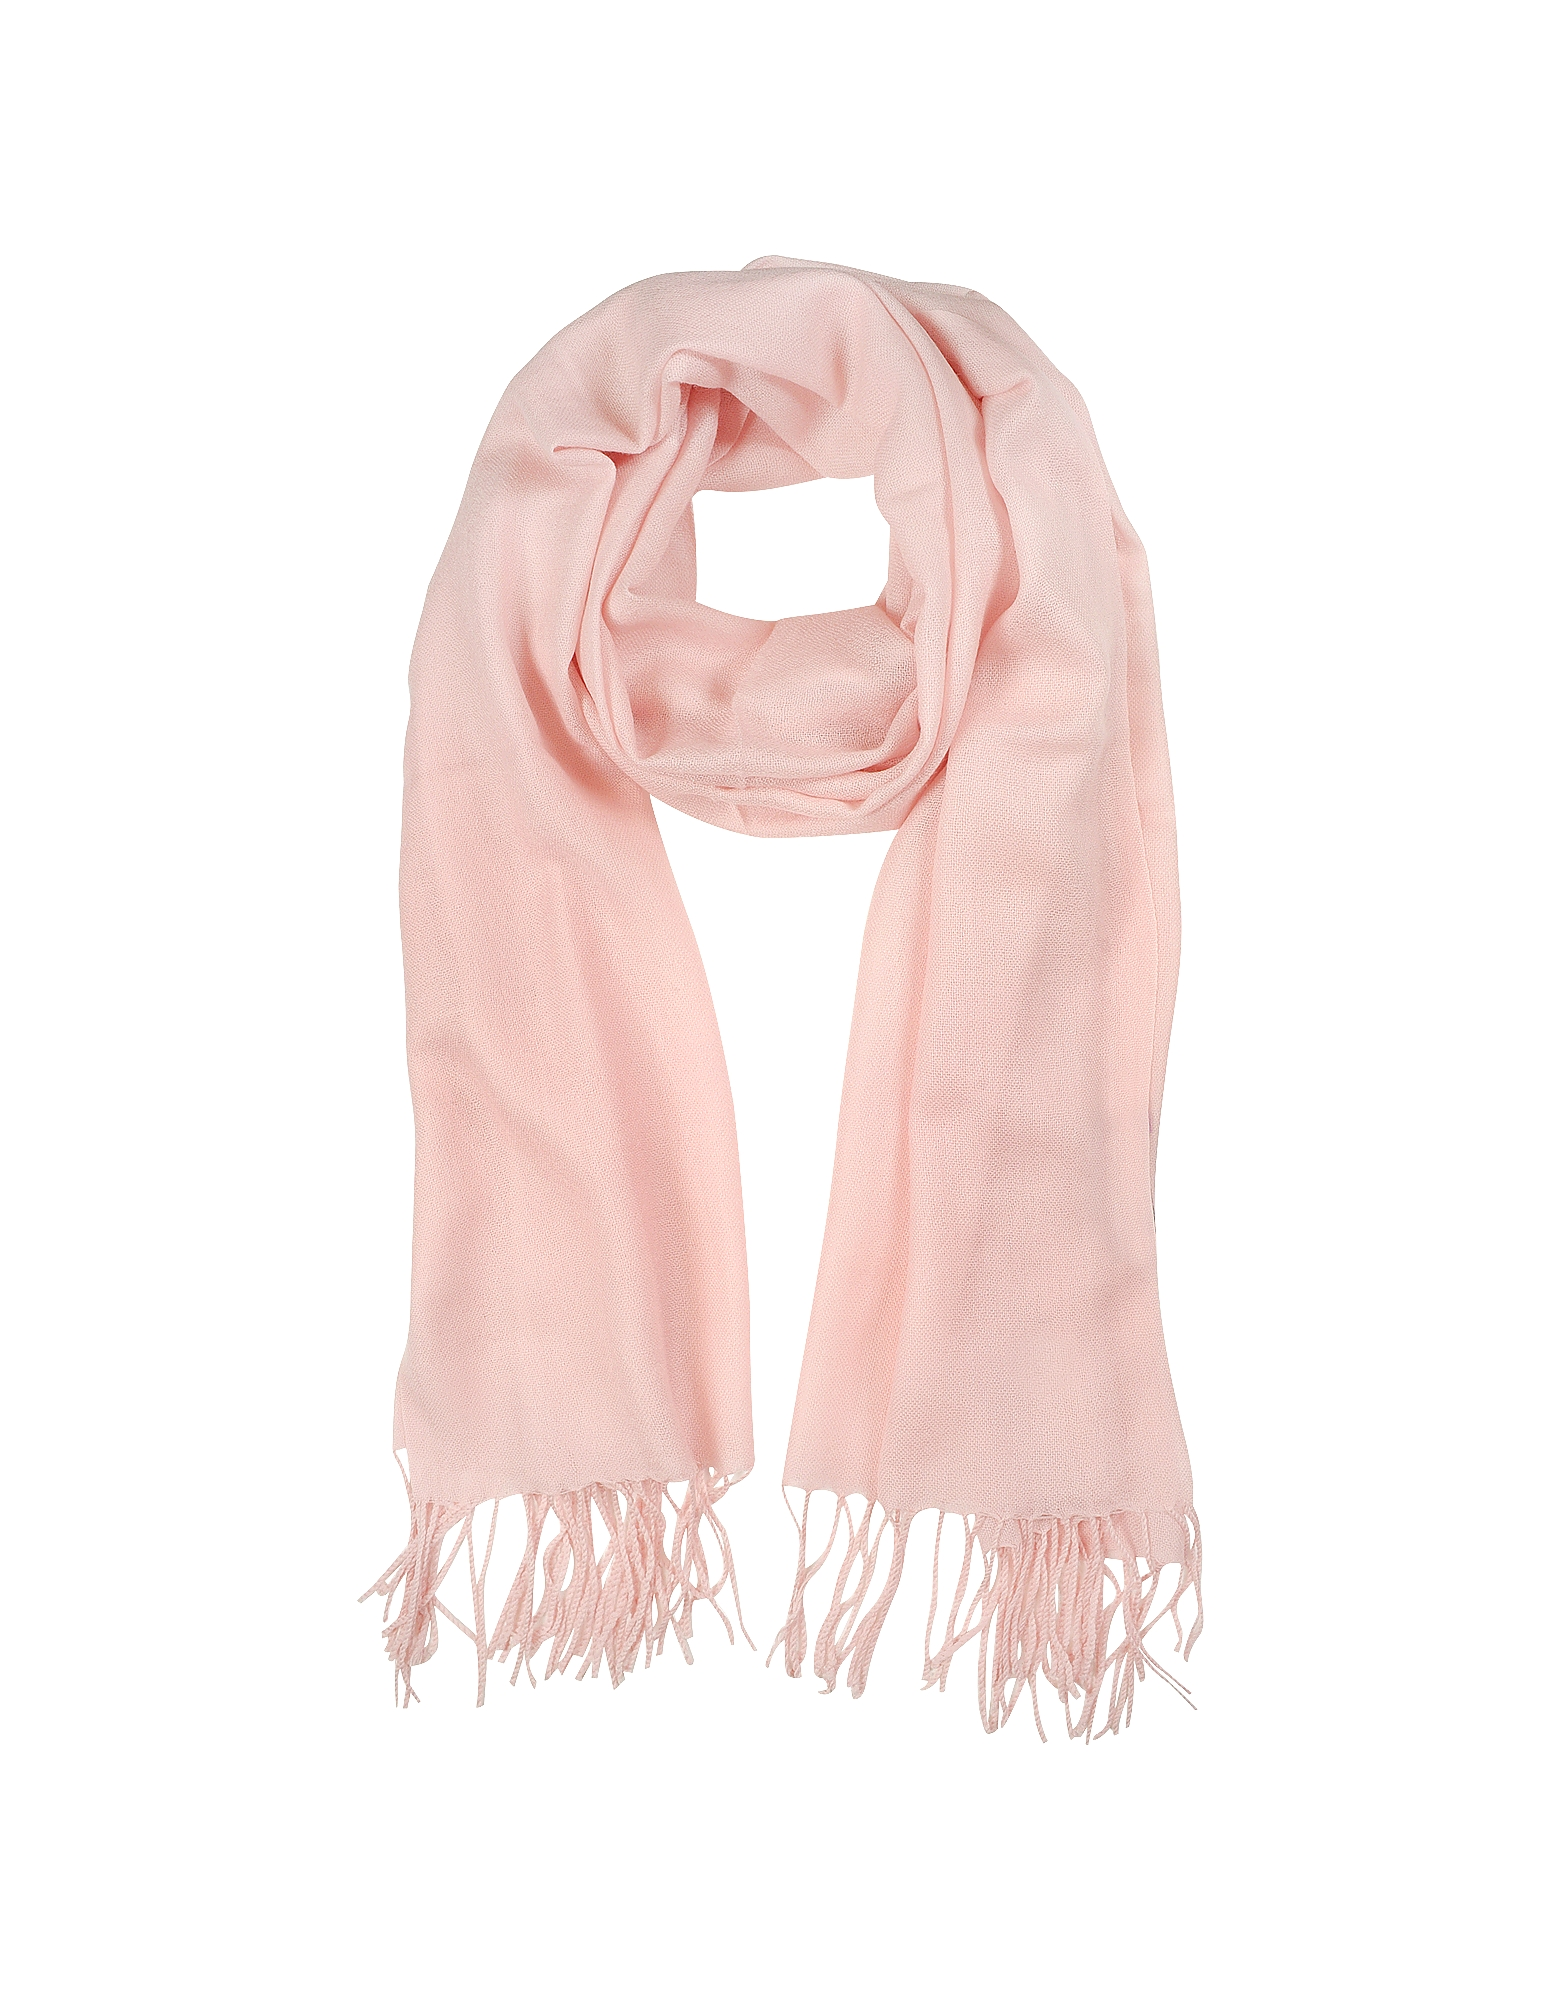 Mila Schon Long Scarves, Light Pink Wool and Cashmere Stole